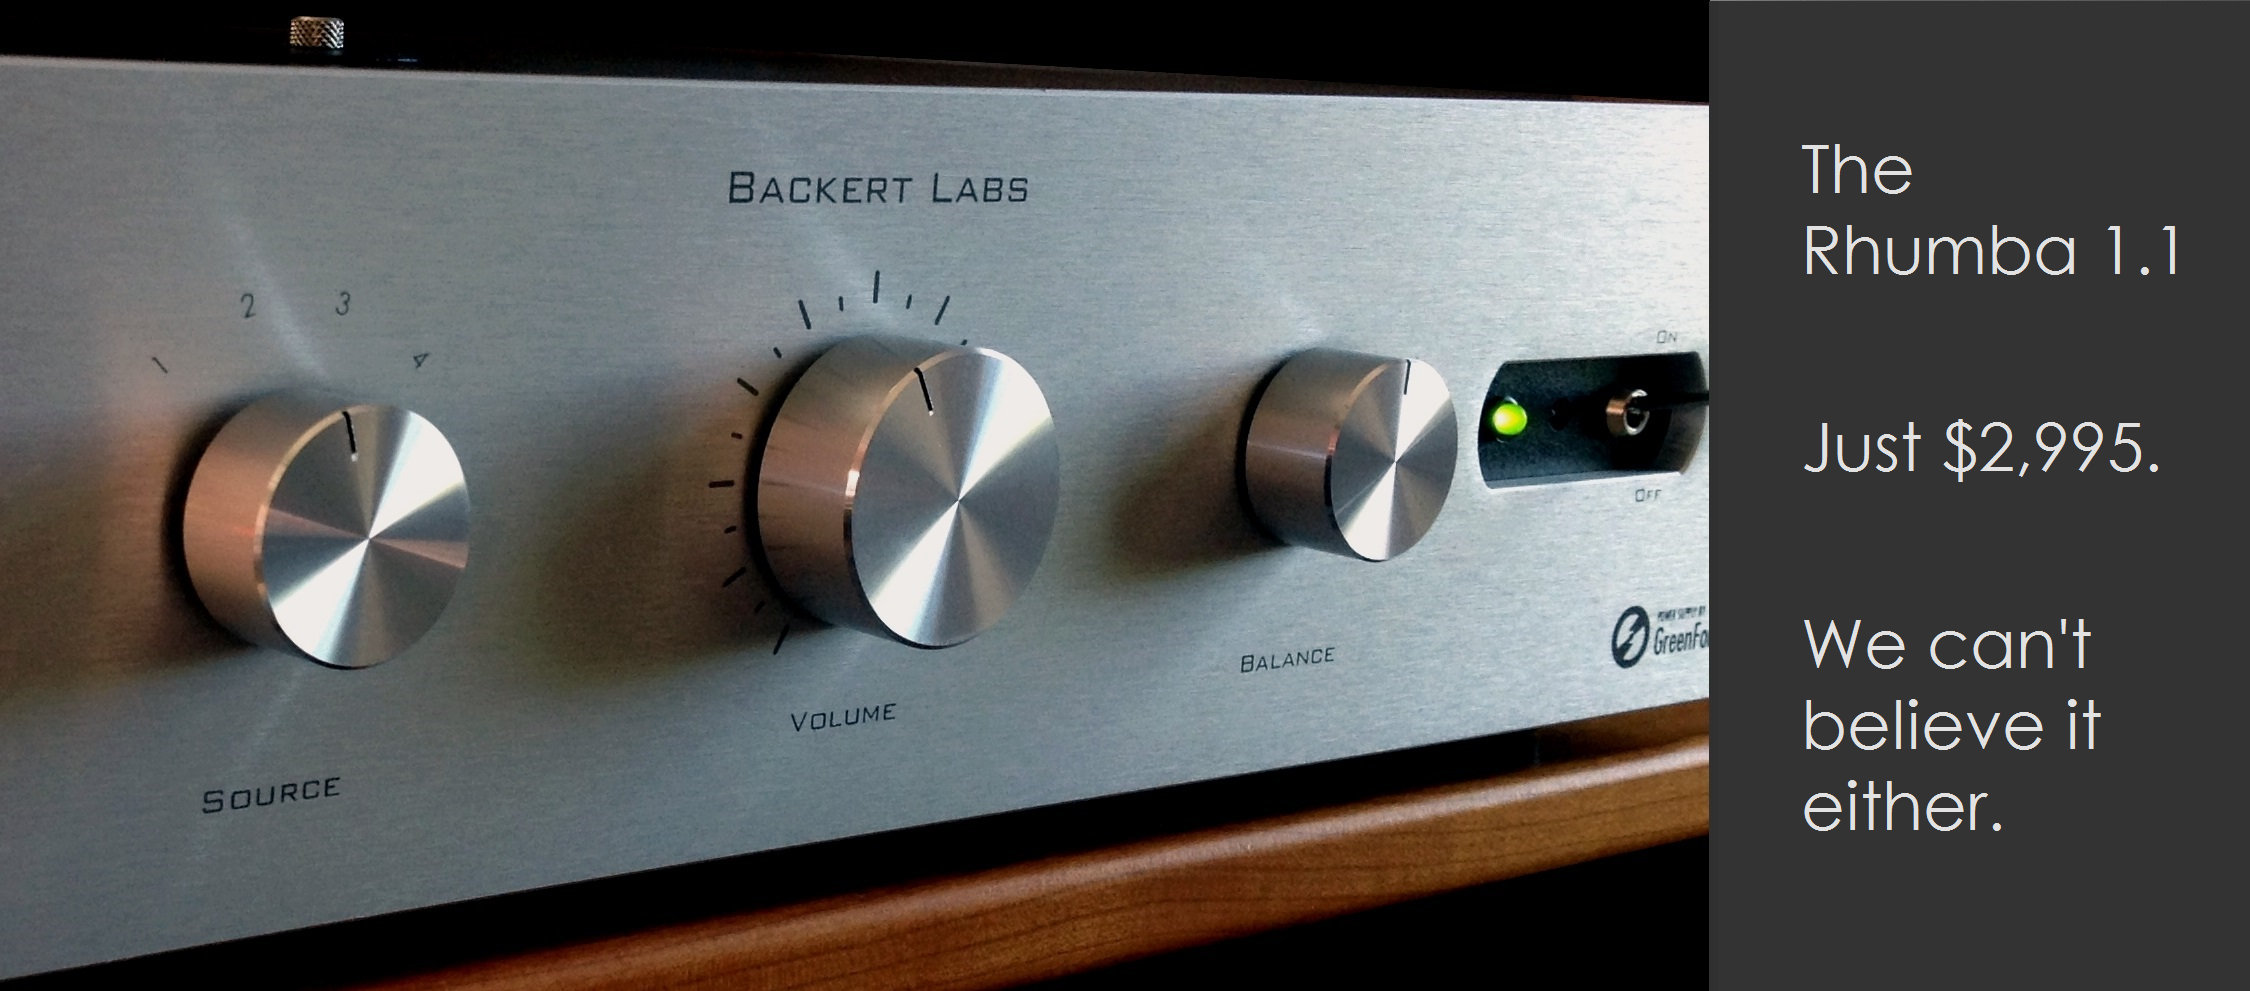 Backert Labs preamps